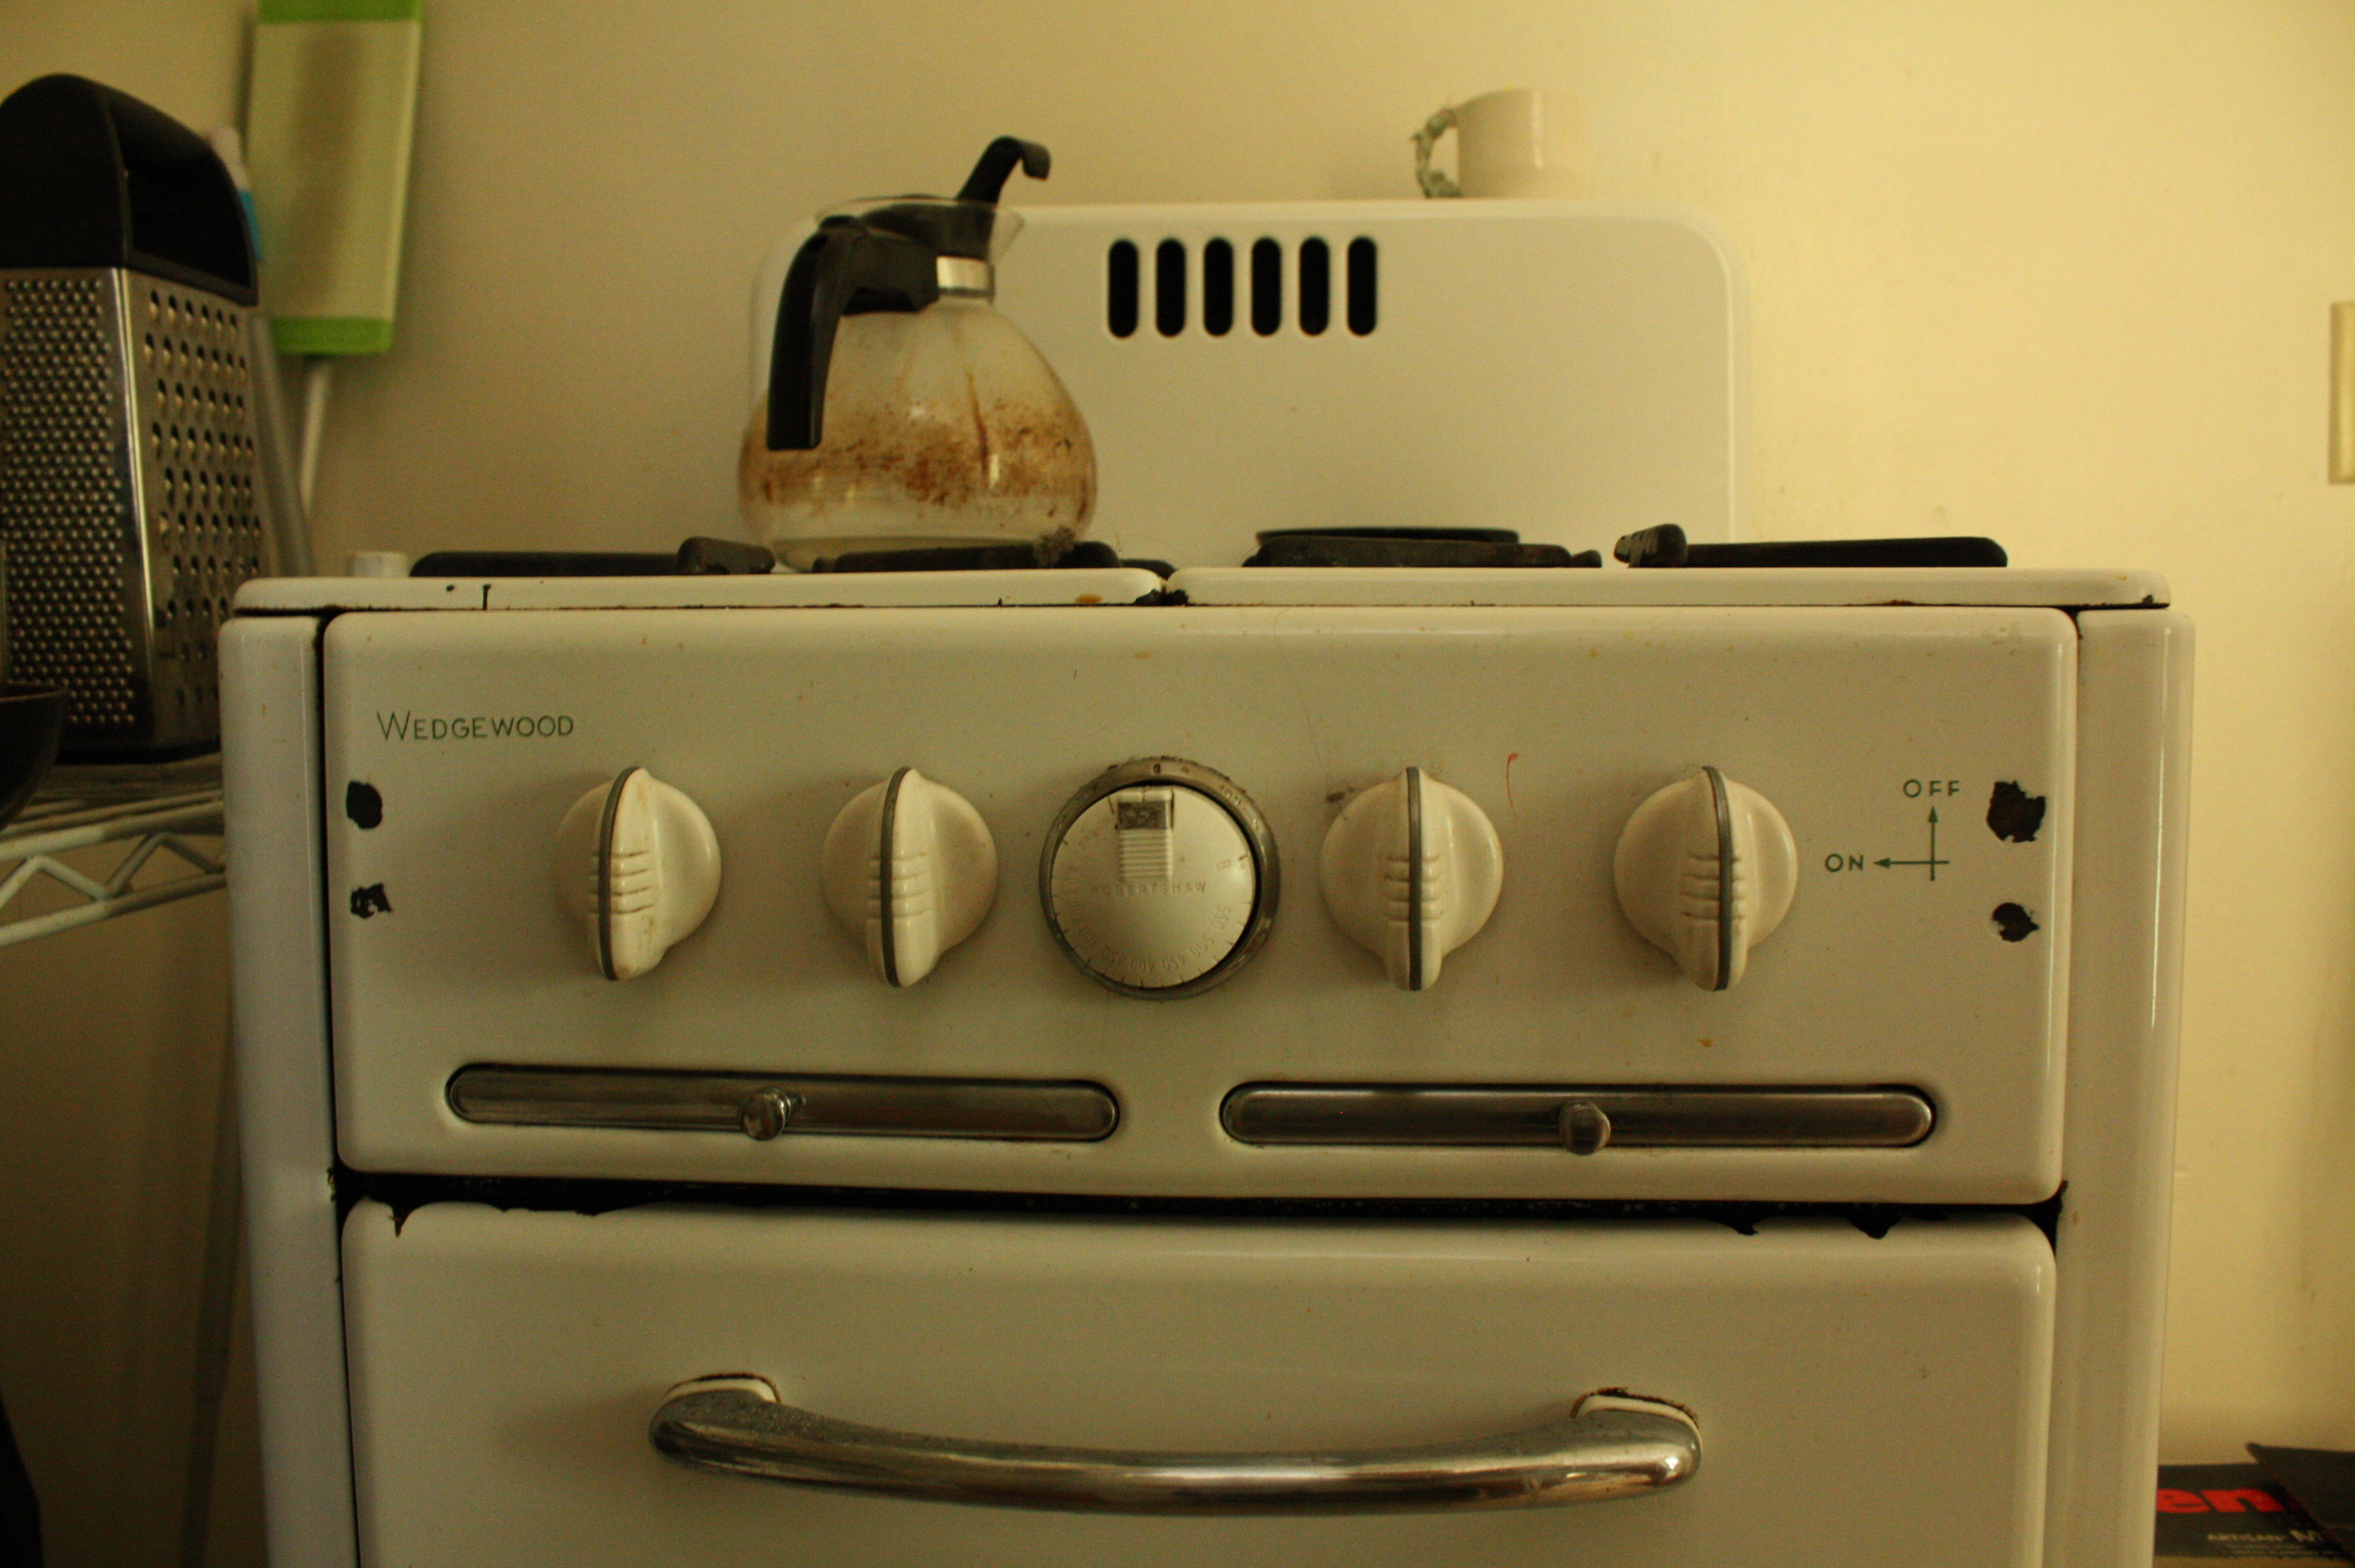 Felicia is a master baker who, as LA real estate fate would have it, has a match-light stove/oven in her kitchen. Like the mad scientist she is, she still makes masterful creations in this tiny vintage time machine.